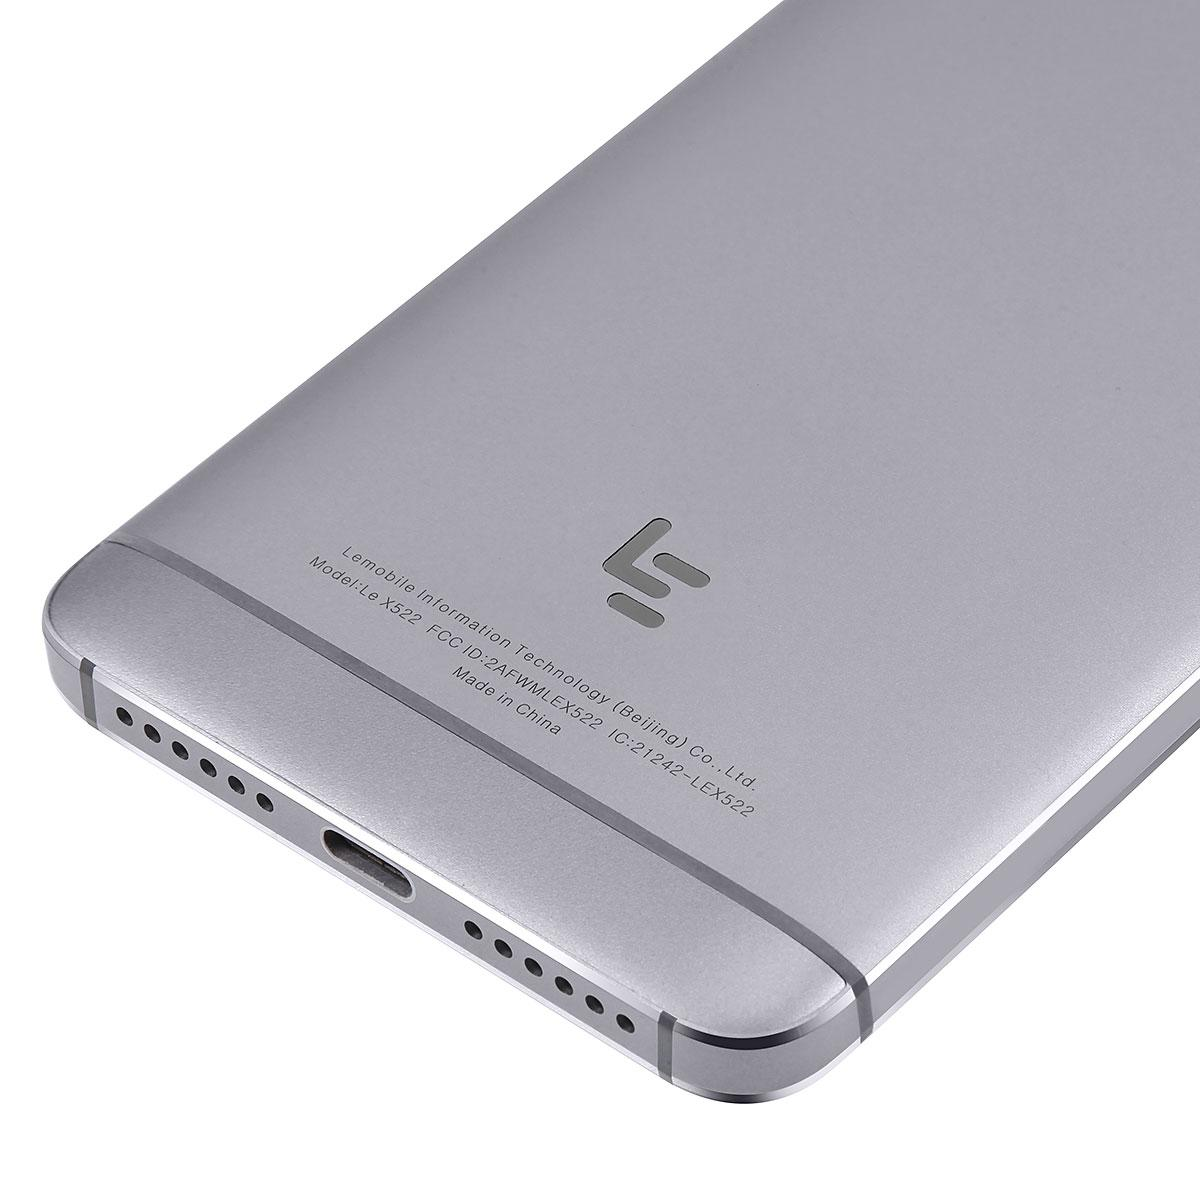 LeTV LeEco 4G Smartphone - 5.5 Inch FHD Screen, Fingerpring Sensor, Android 6.0, Octa-Core CPU, 3GB RAM, Dual-Band Wifi Grey